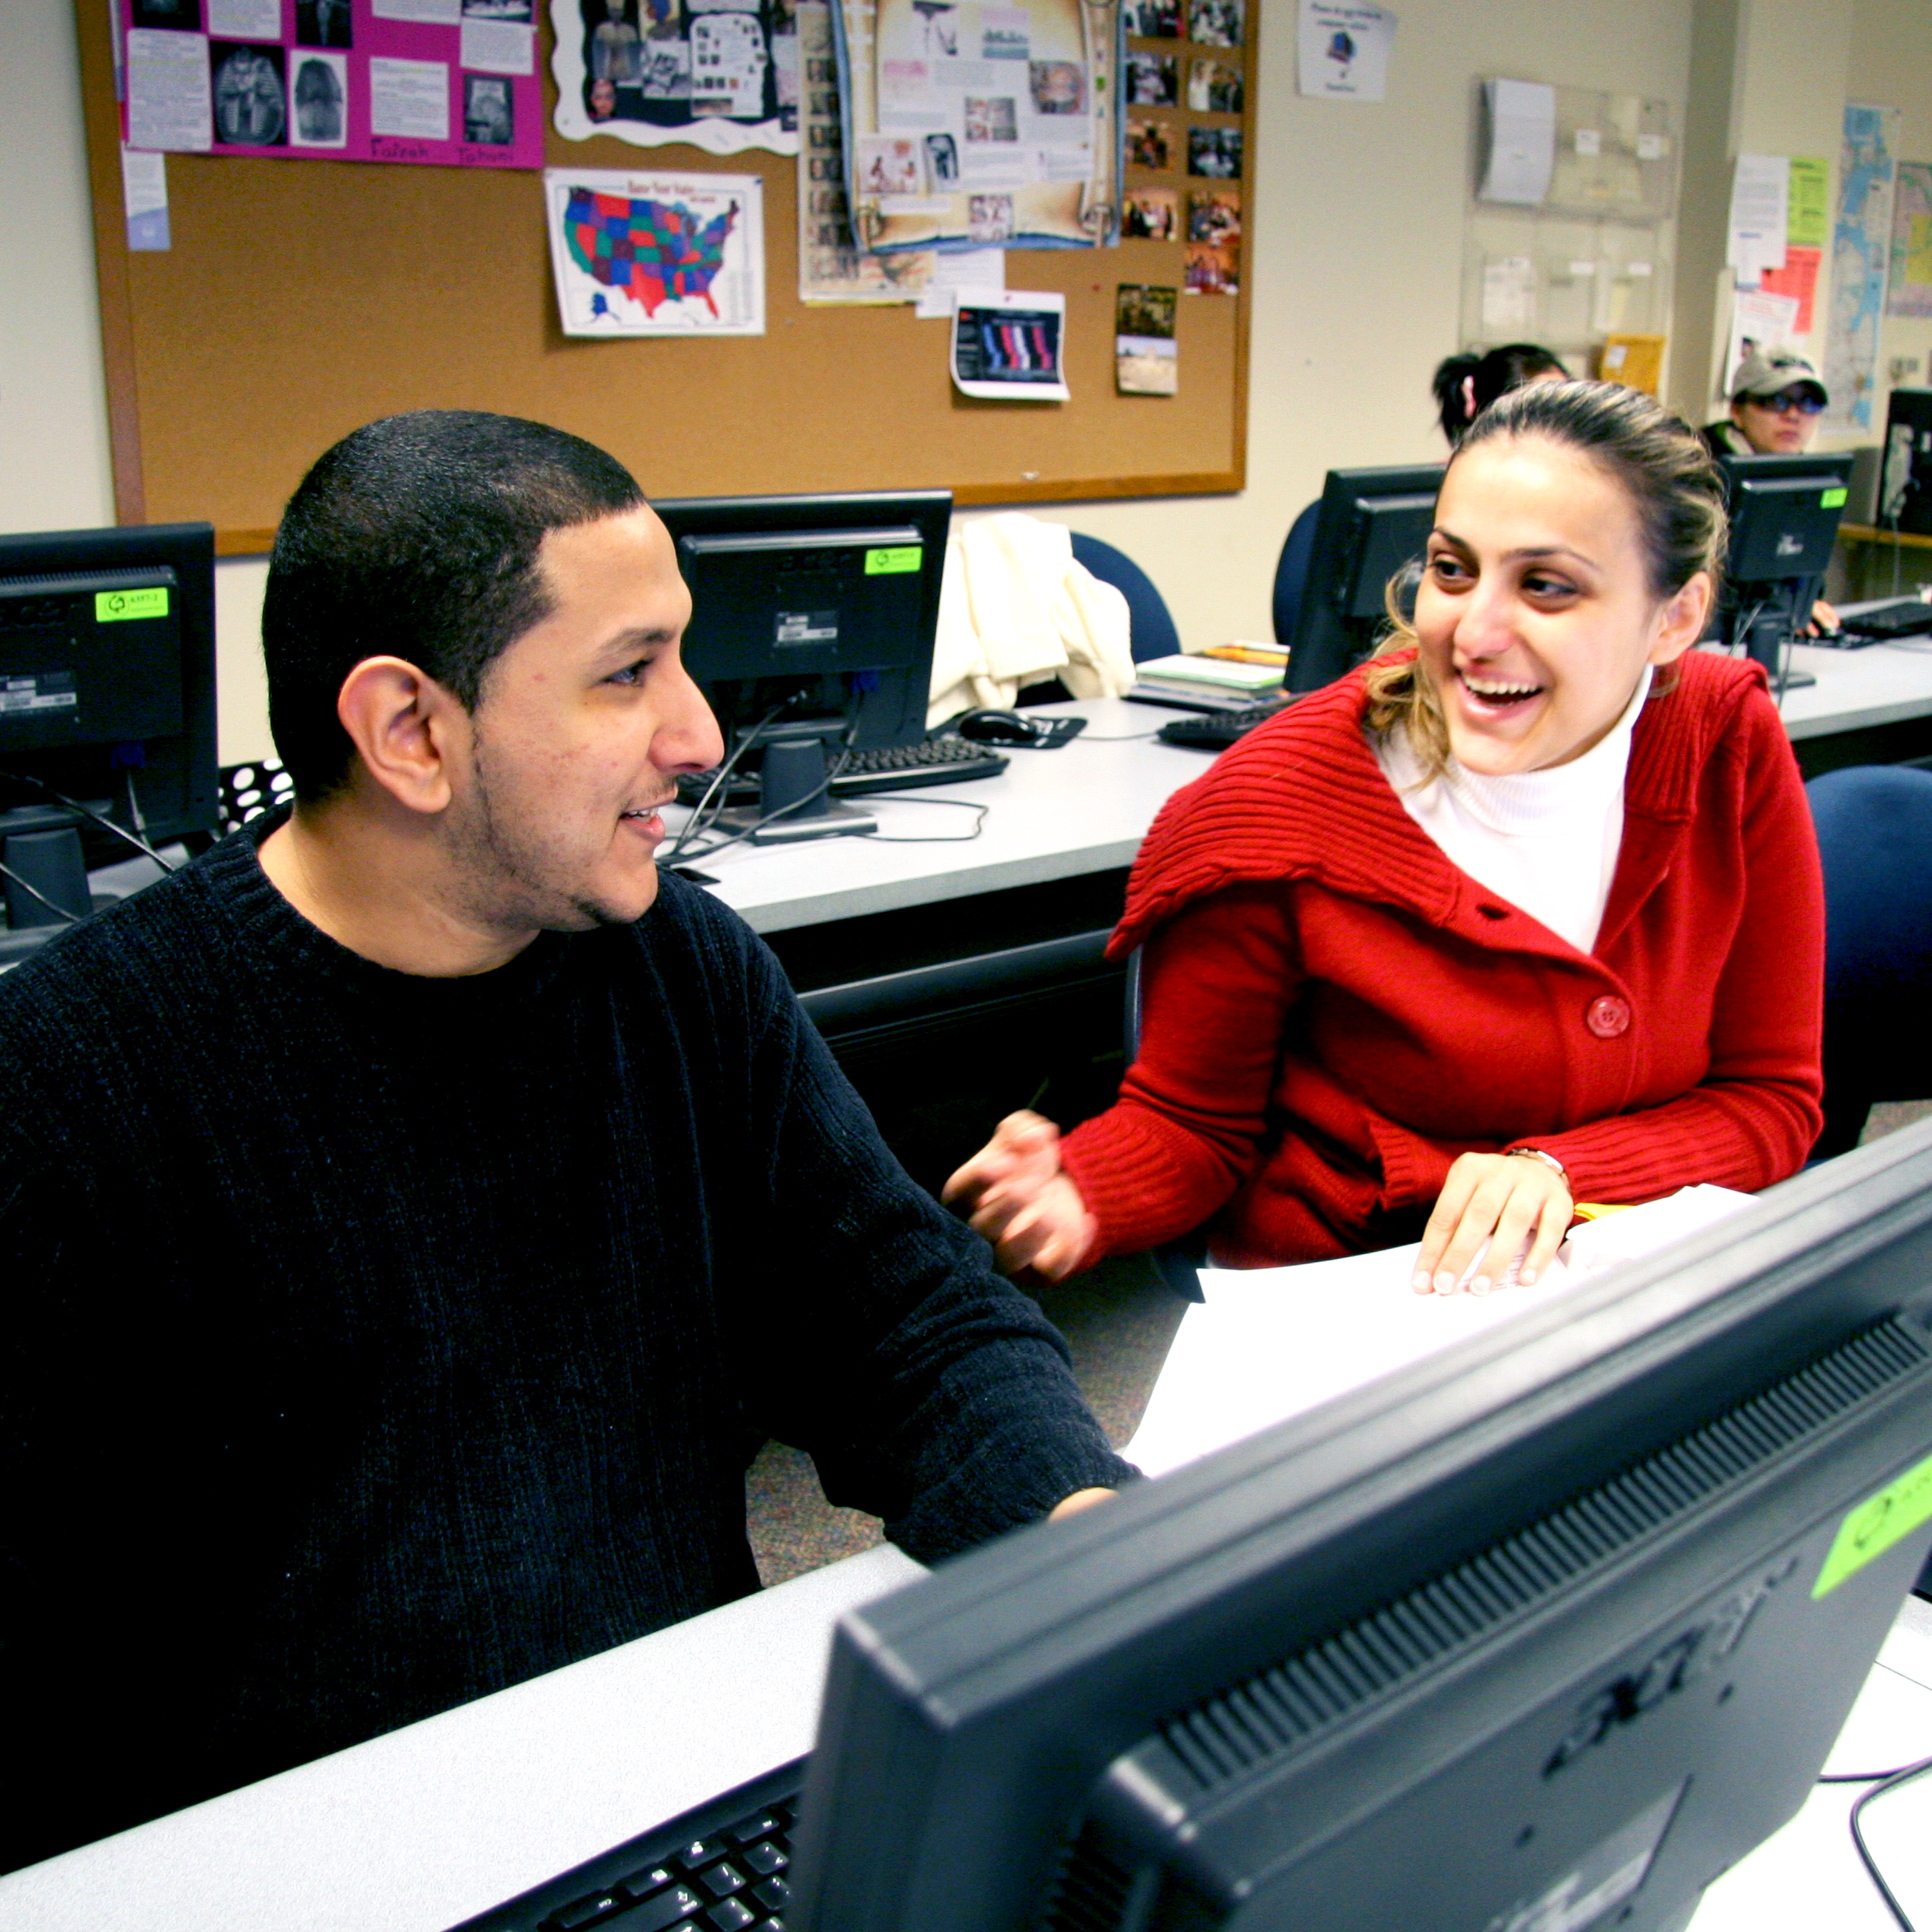 Two students laughing and talking in a classroom computer lab